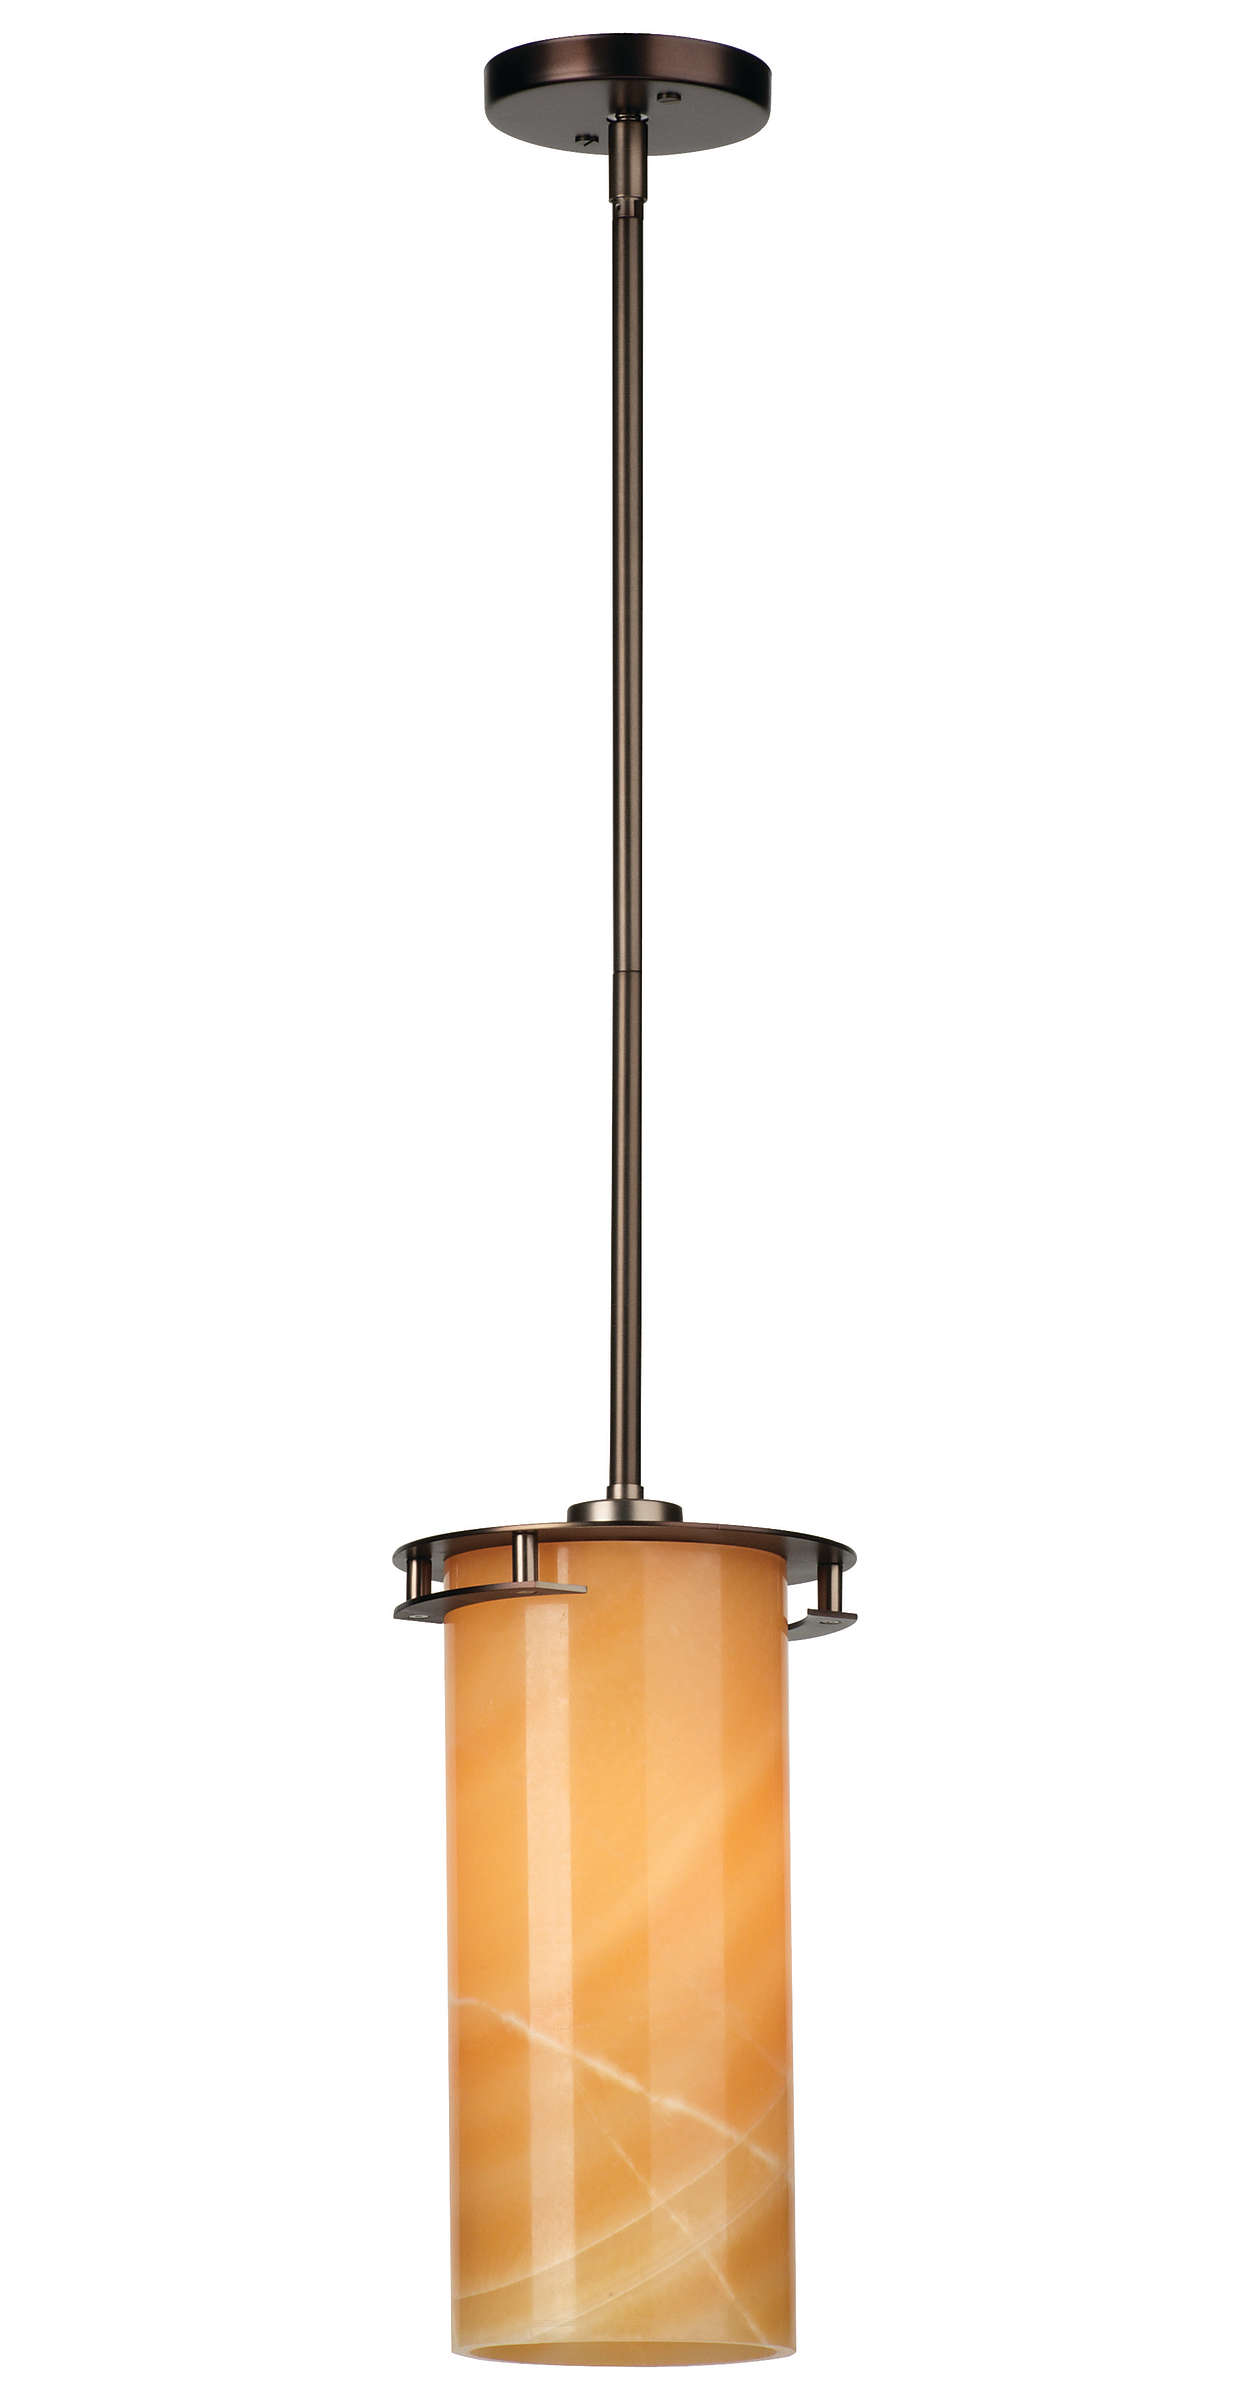 Ingo 1-light Pendant in Merlot Bronze finish